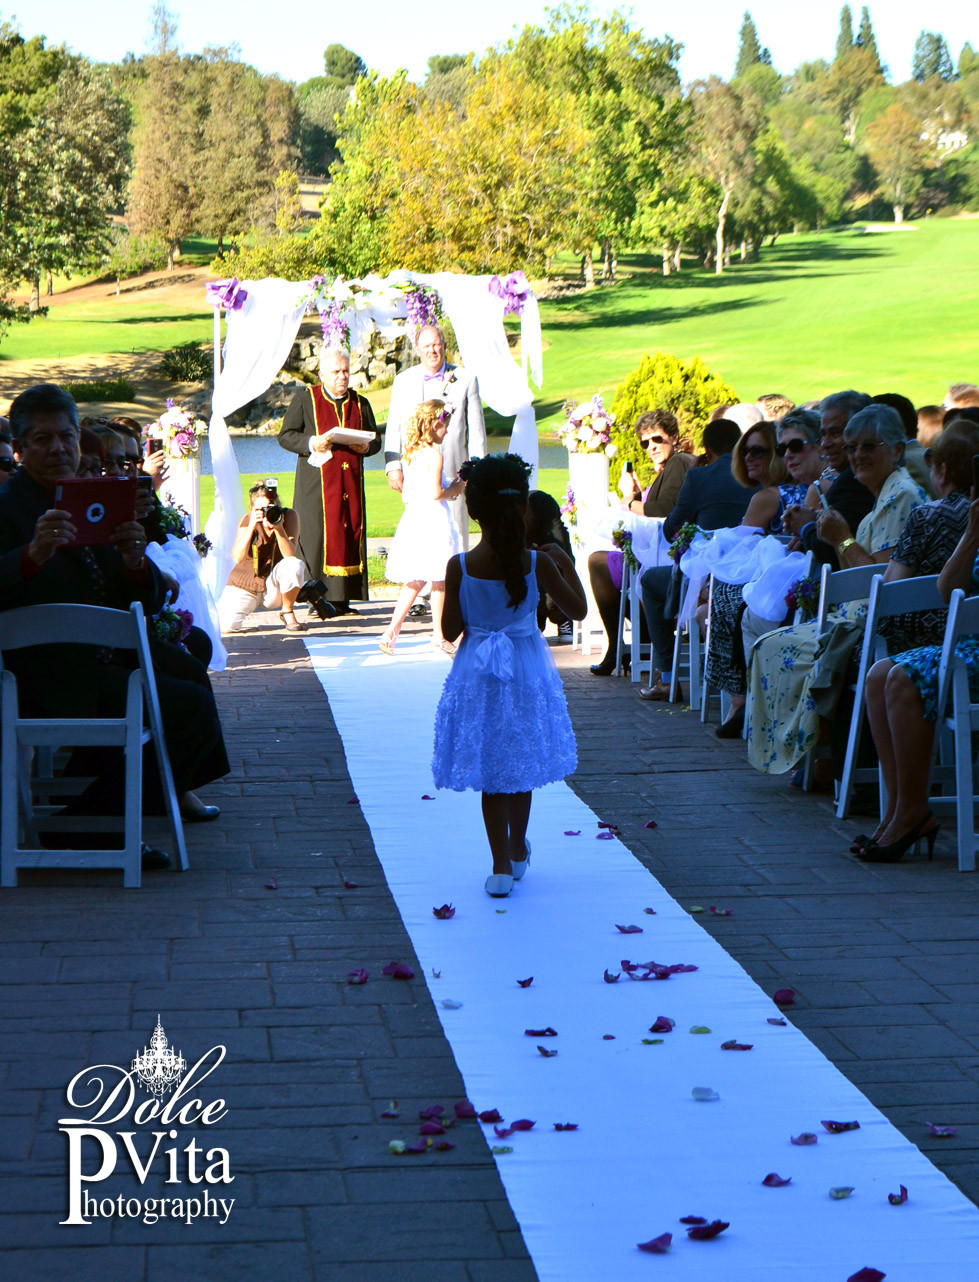 Outdoor golf course wedding ceremony with white arch and flowers by Dolce Vita Events of Orange County